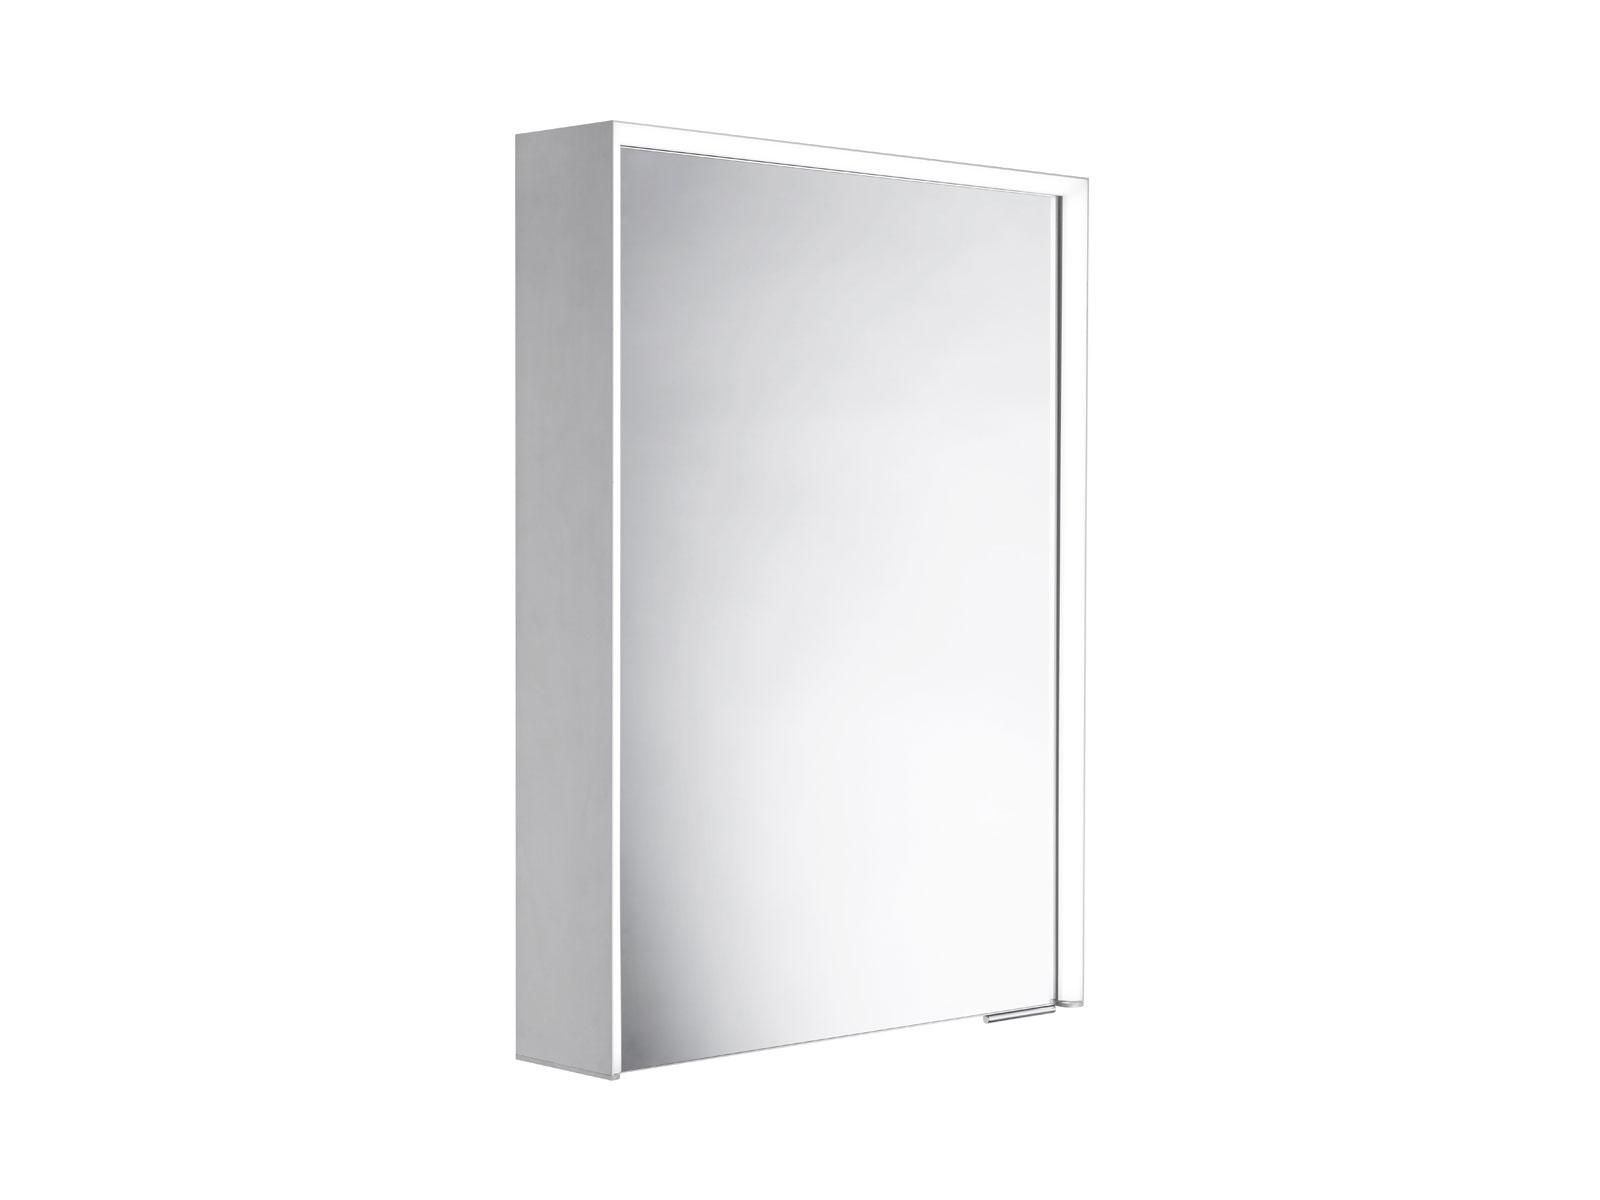 Roper Rhodes Lyric Illuminated Bluetooth Bathroom Mirror Cabinet single door